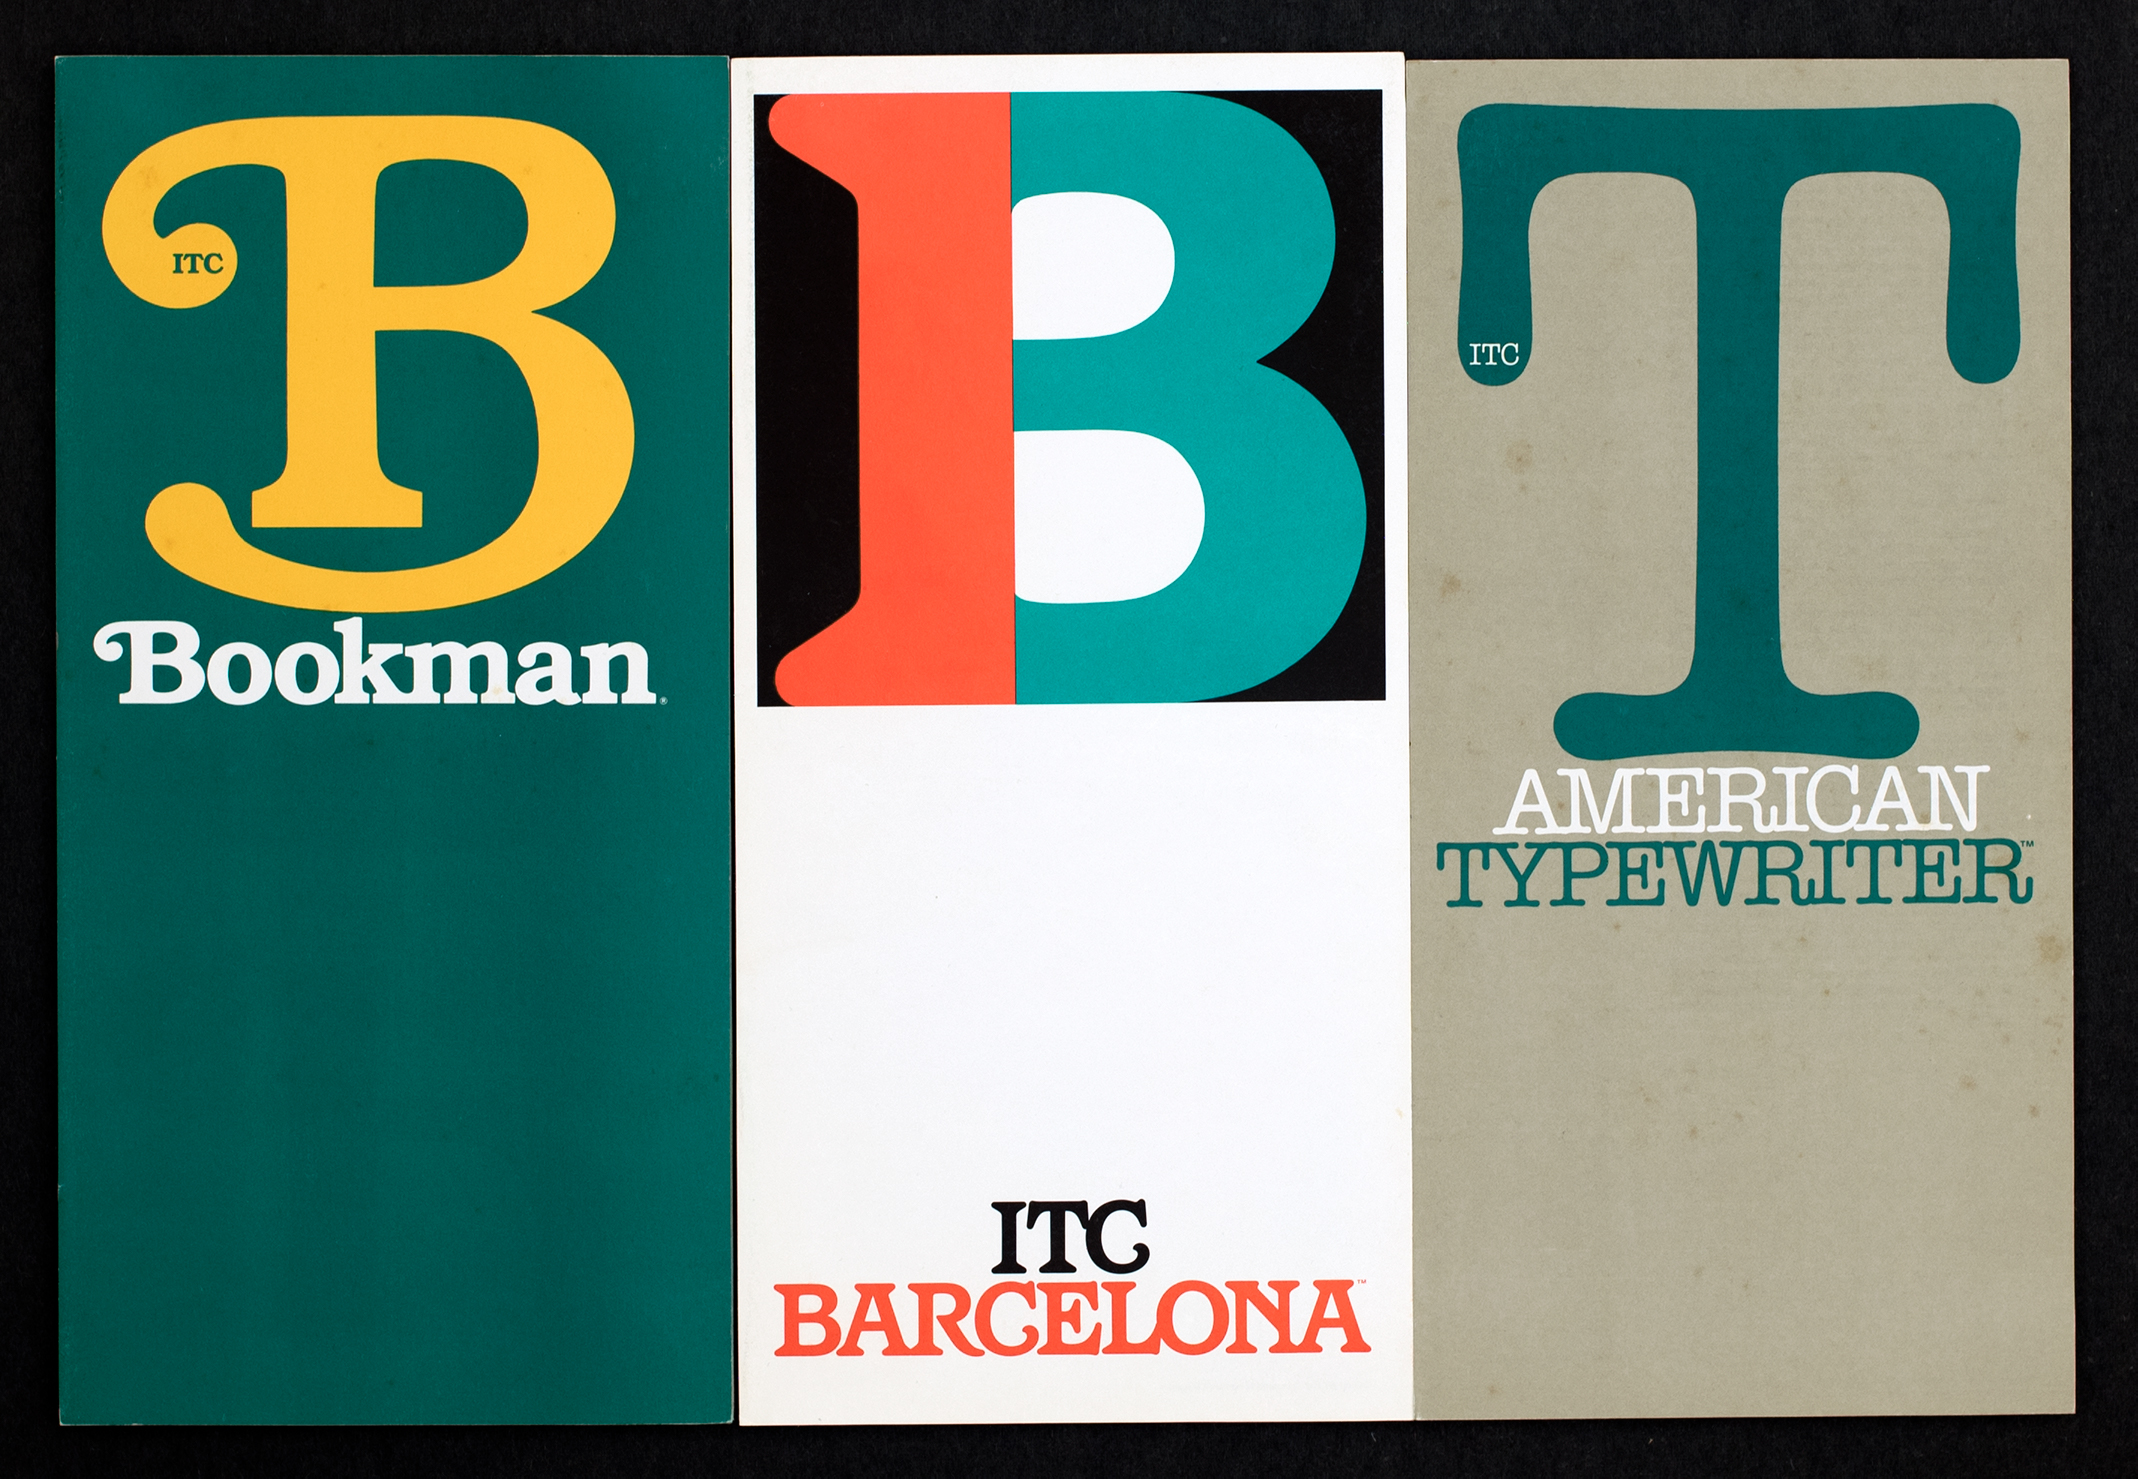 On a segmented background, three fonts are compared side by side. Bookman is yellow against blue, Barcelona is orange and blue against white, and typewriter is blue against grey.